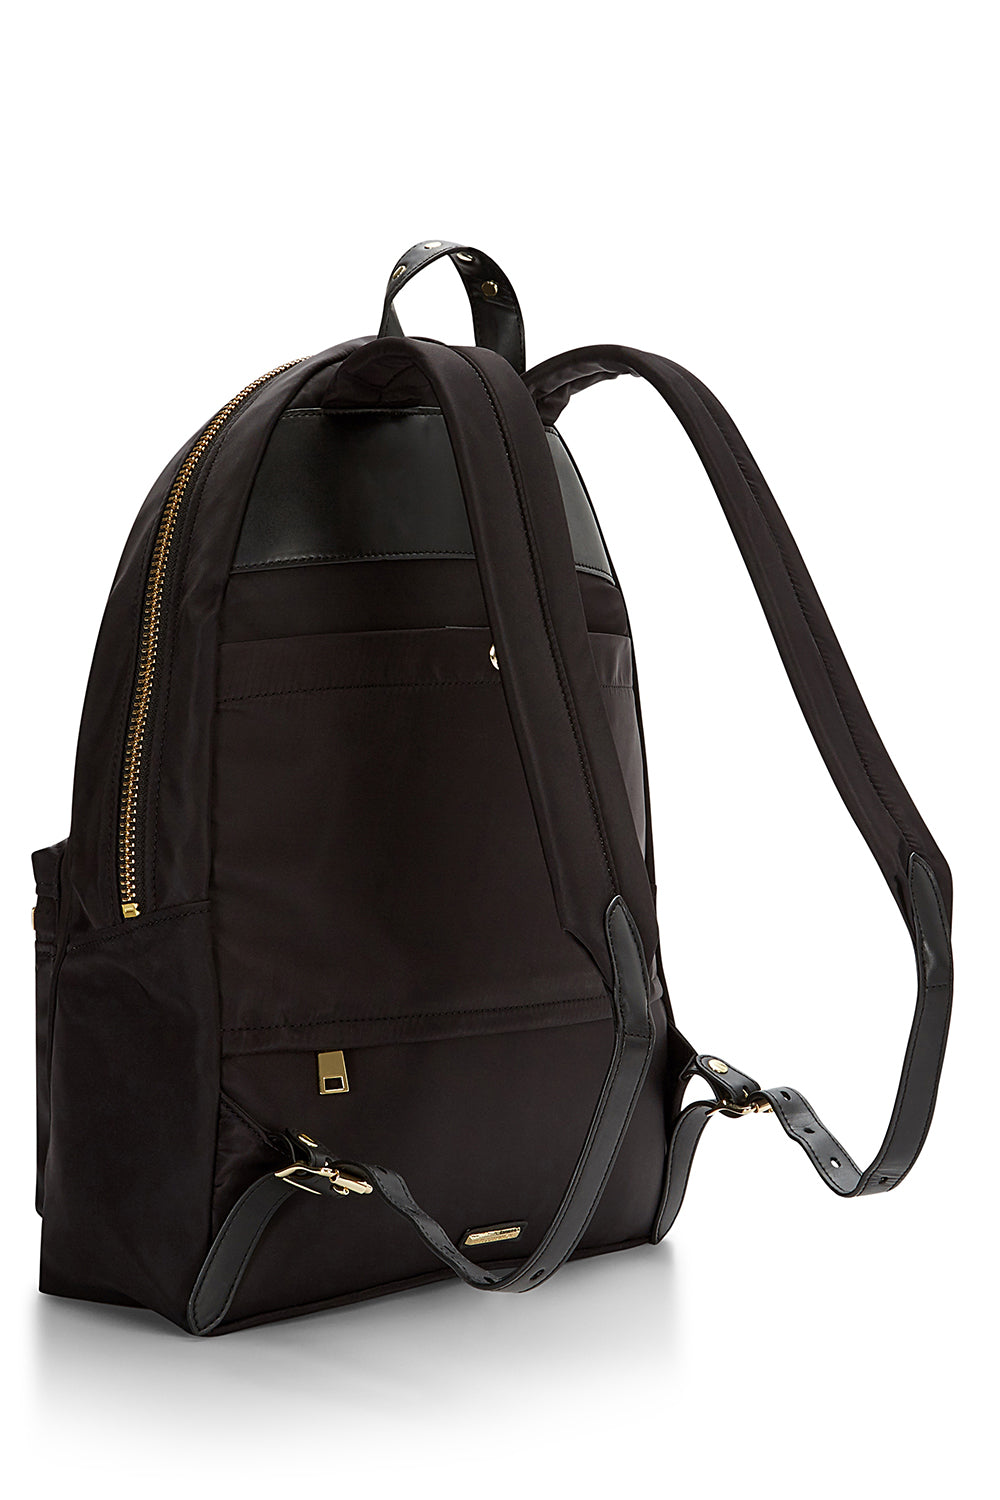 590aa43ecf6f Designer Backpacks   Women s Rucksacks - Farfetch AU